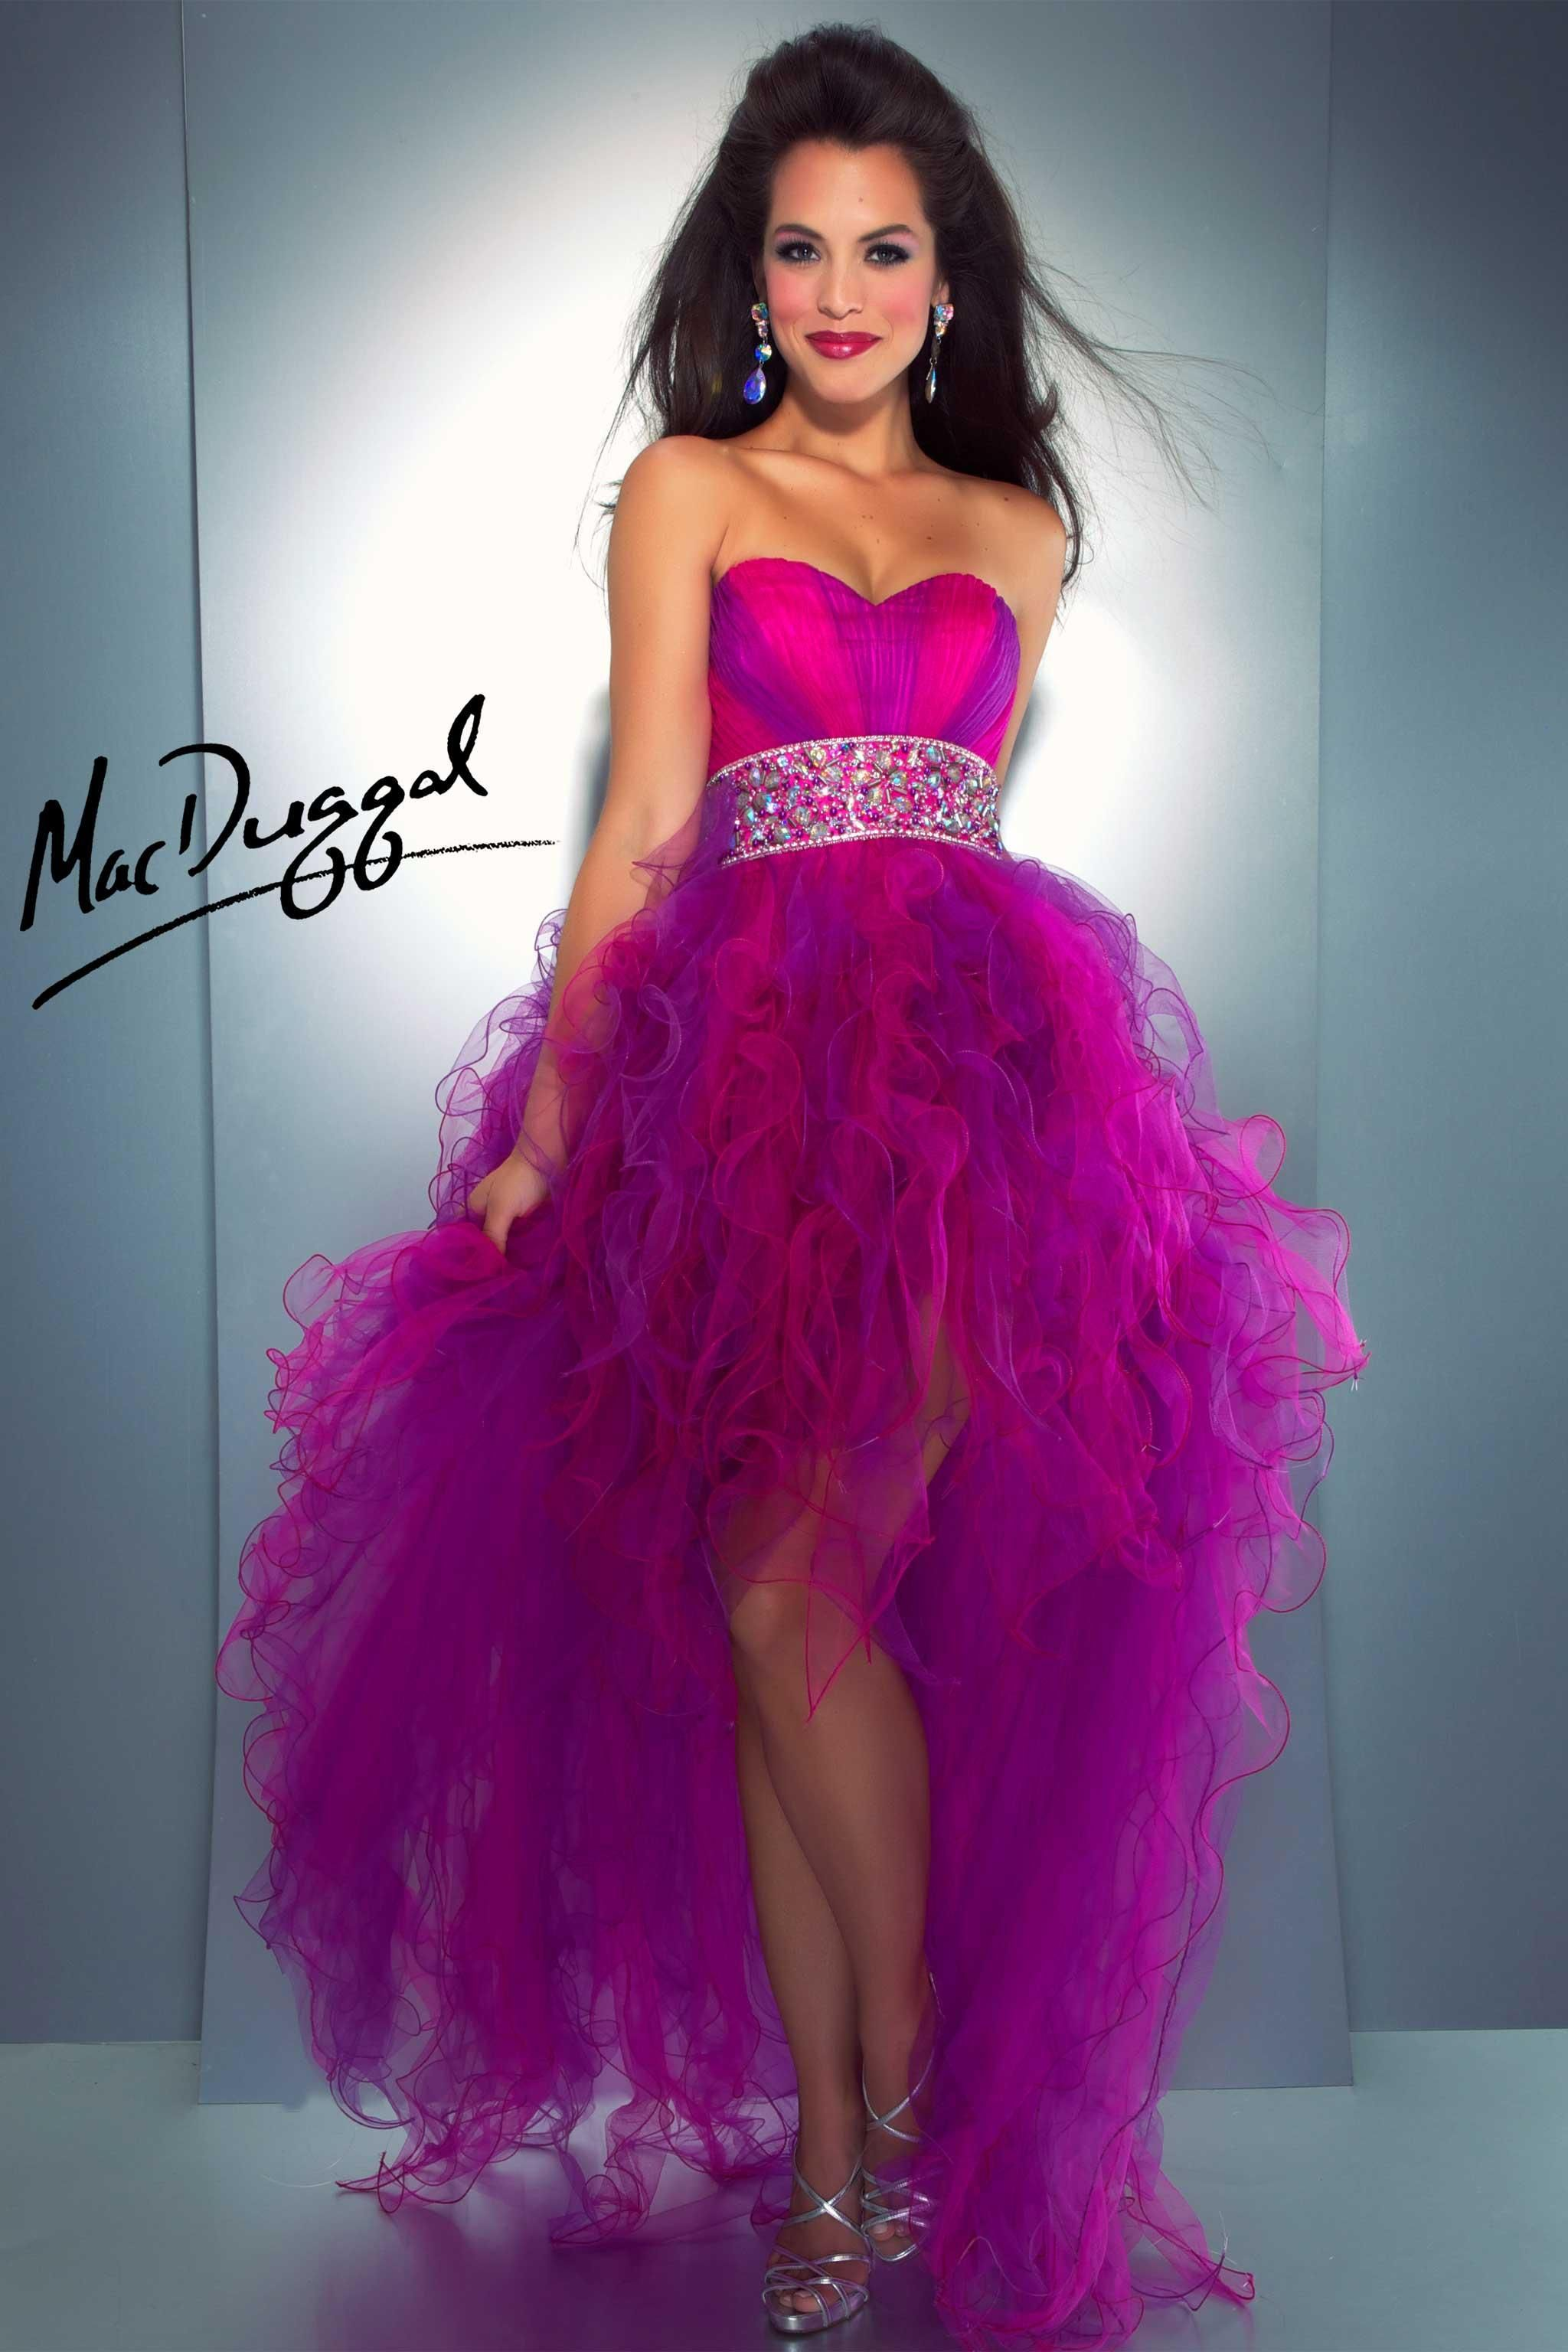 Neon Purple Prom Dress | Neon | Pinterest | Quinceañera, Vestidos de ...